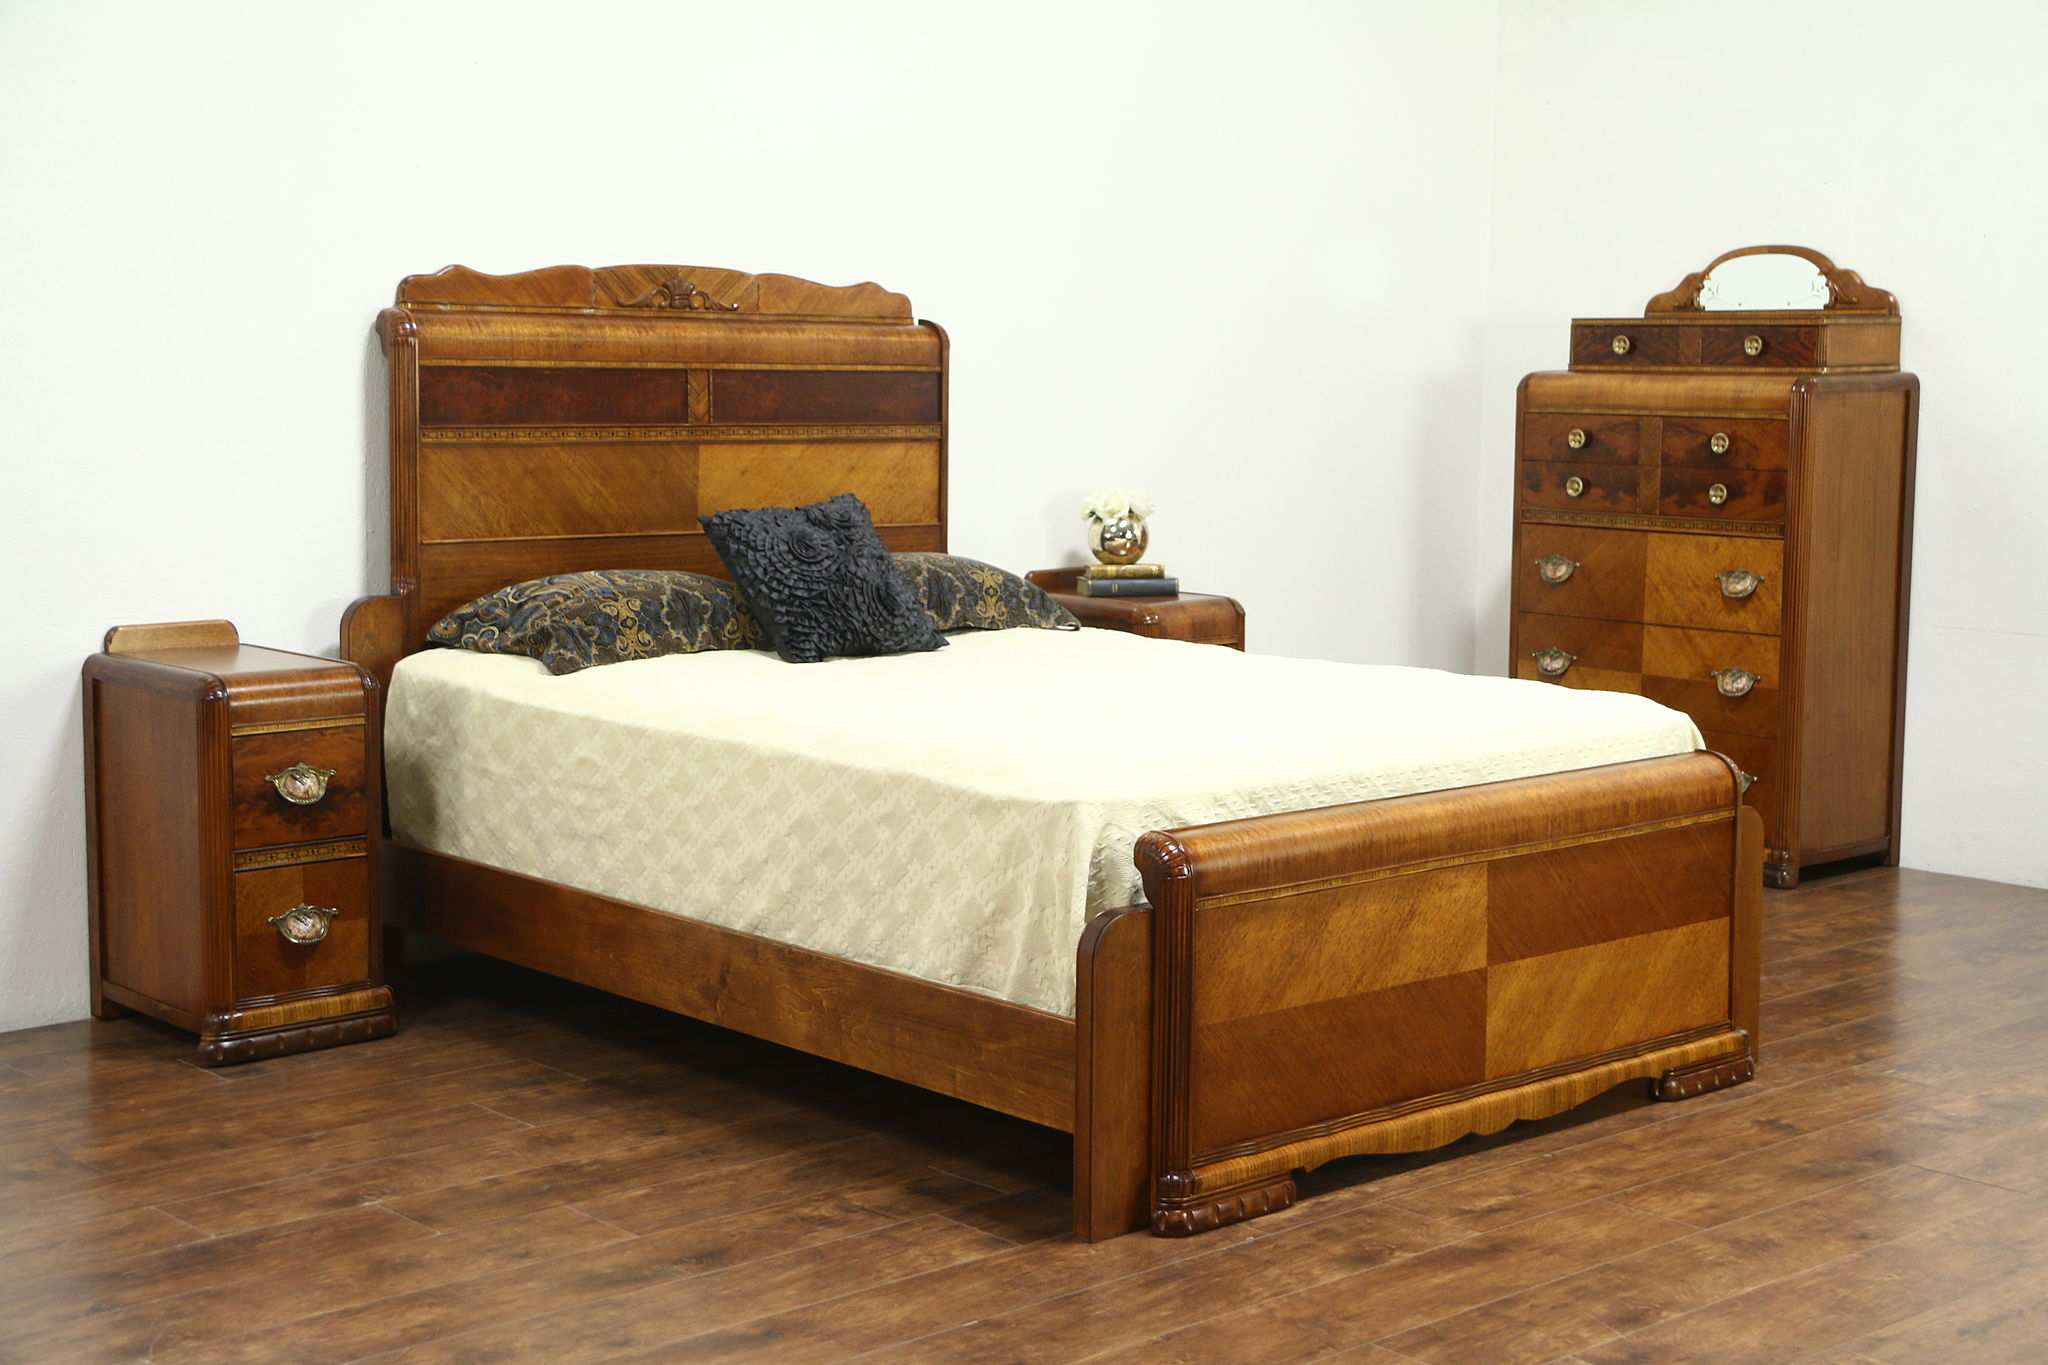 Sold Waterfall Art Deco Vintage Bedroom Set Queen Size Bed Tall Chest 2 Nightstands Harp Gallery Antiques Furniture